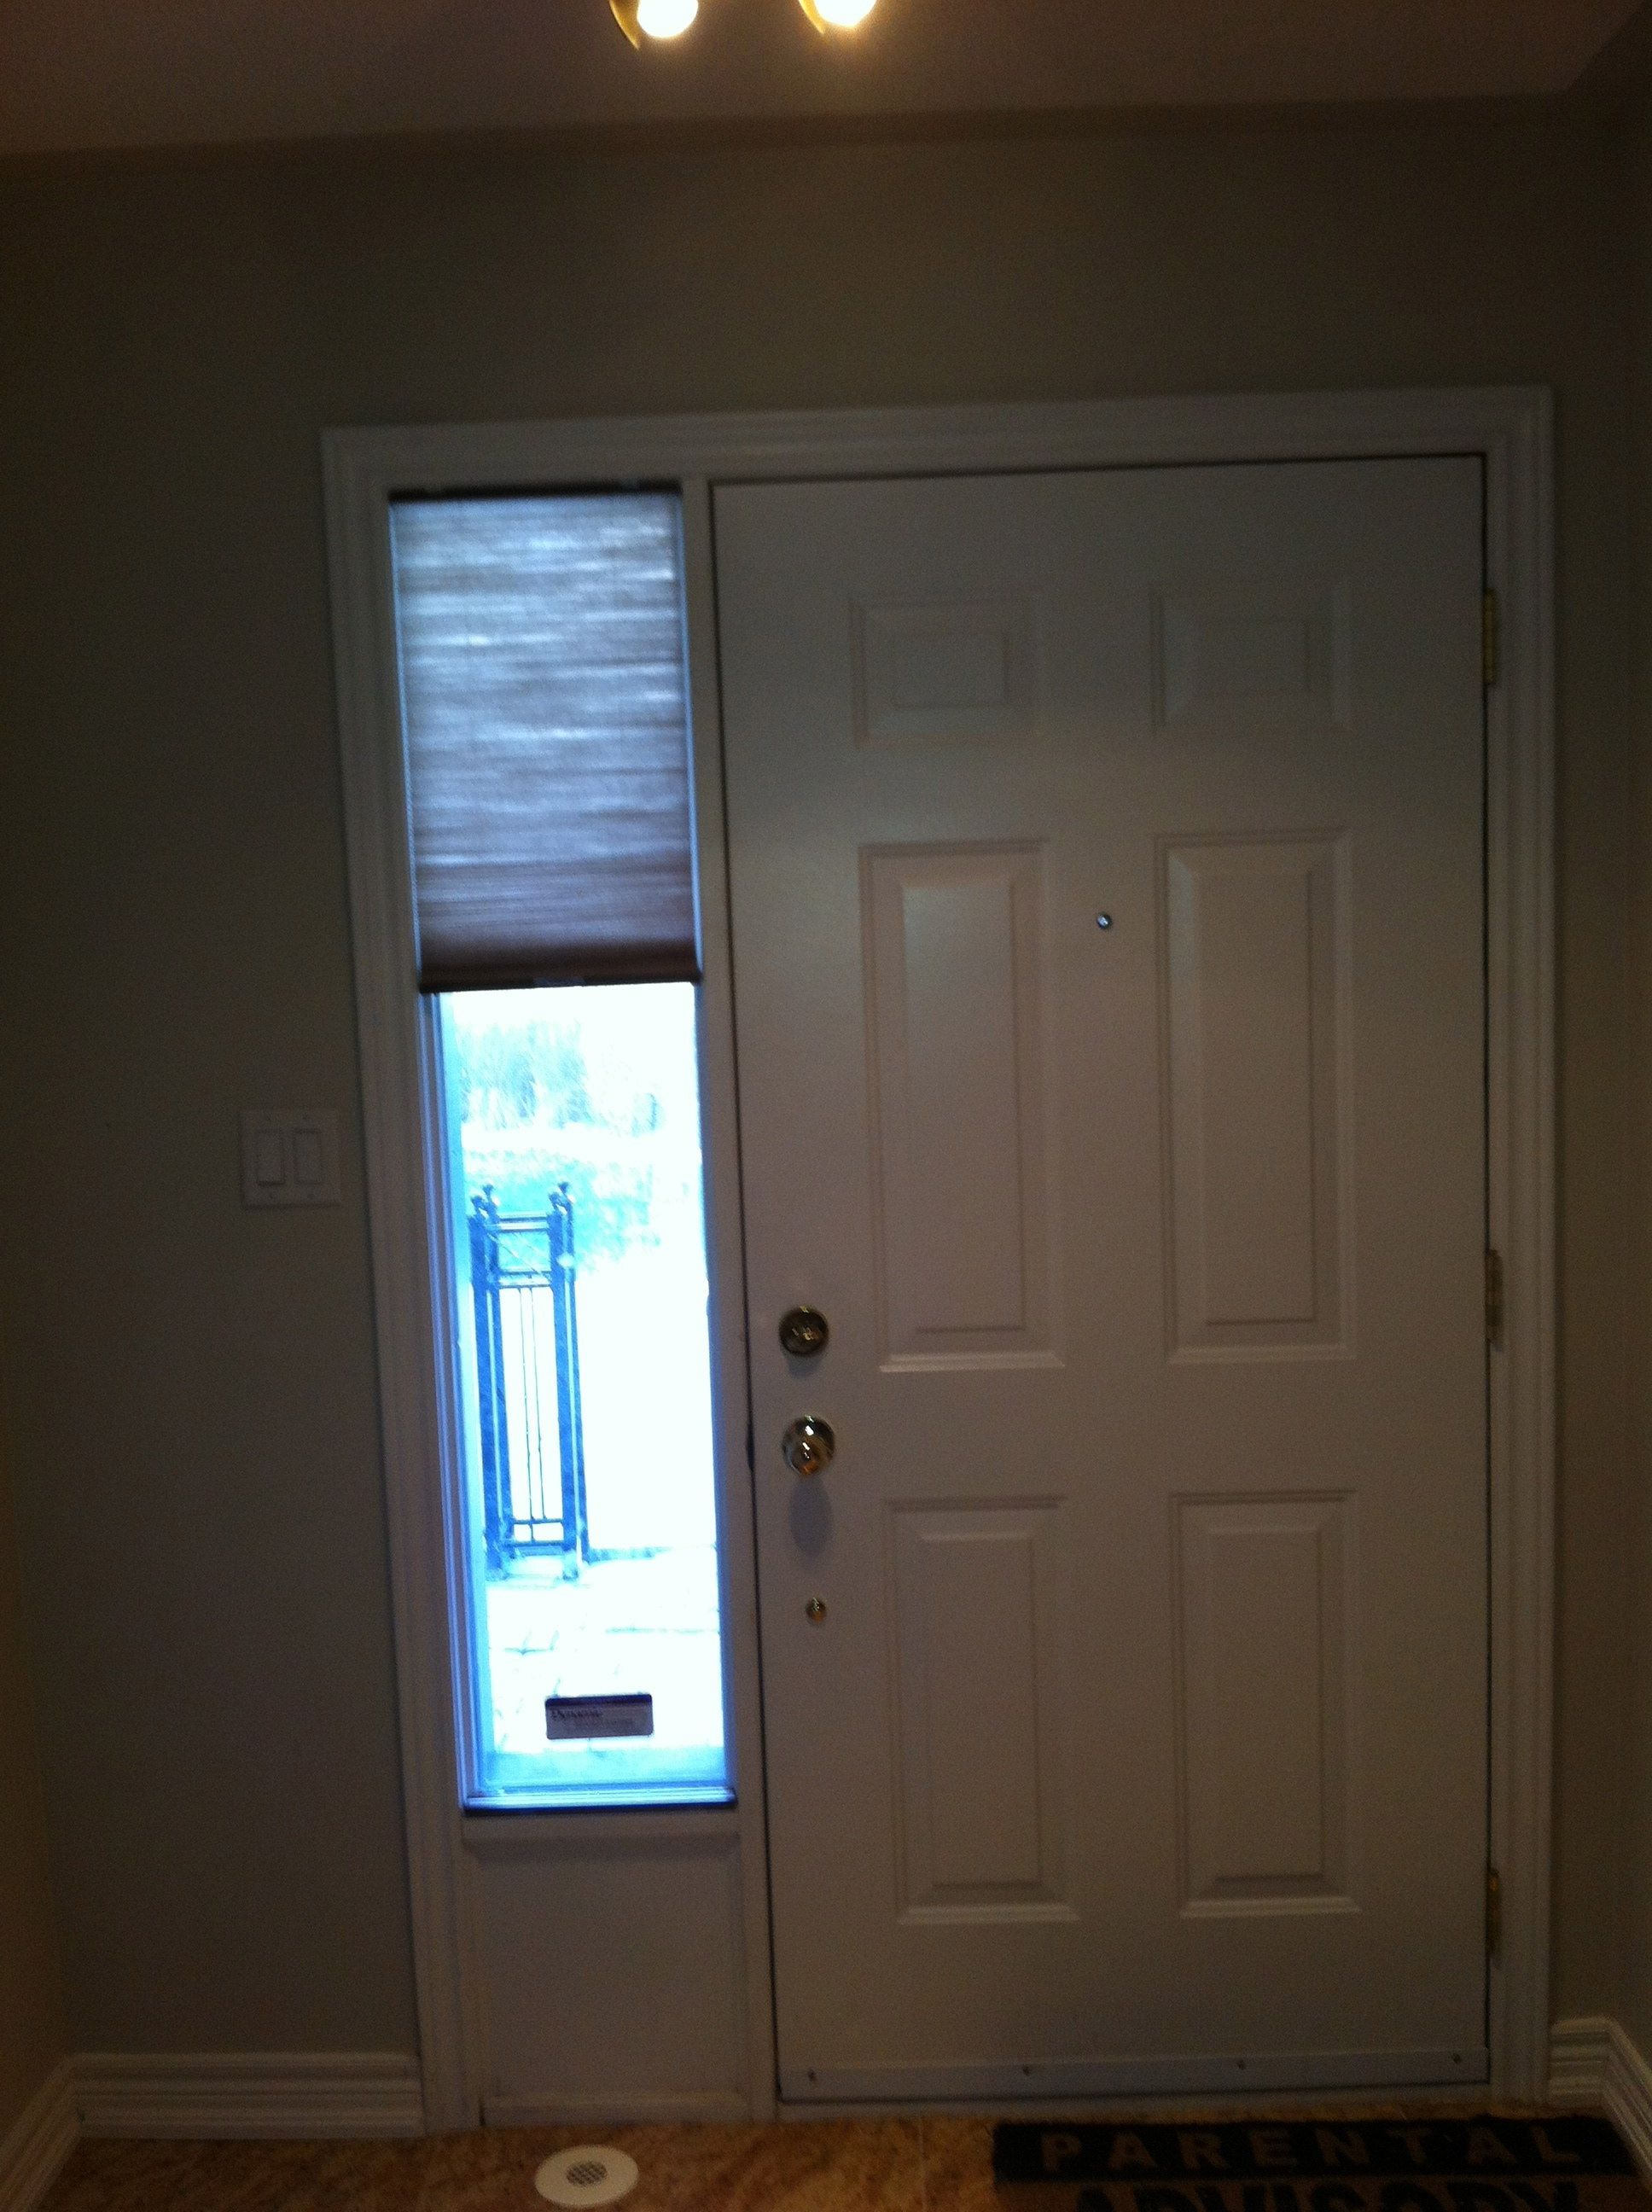 Front Doors Ideas Blinds For Front Door 13 Blinds For Windows Within Measurements 1936 X 25 Blinds For Windows Front Doors With Windows Front Door Side Windows